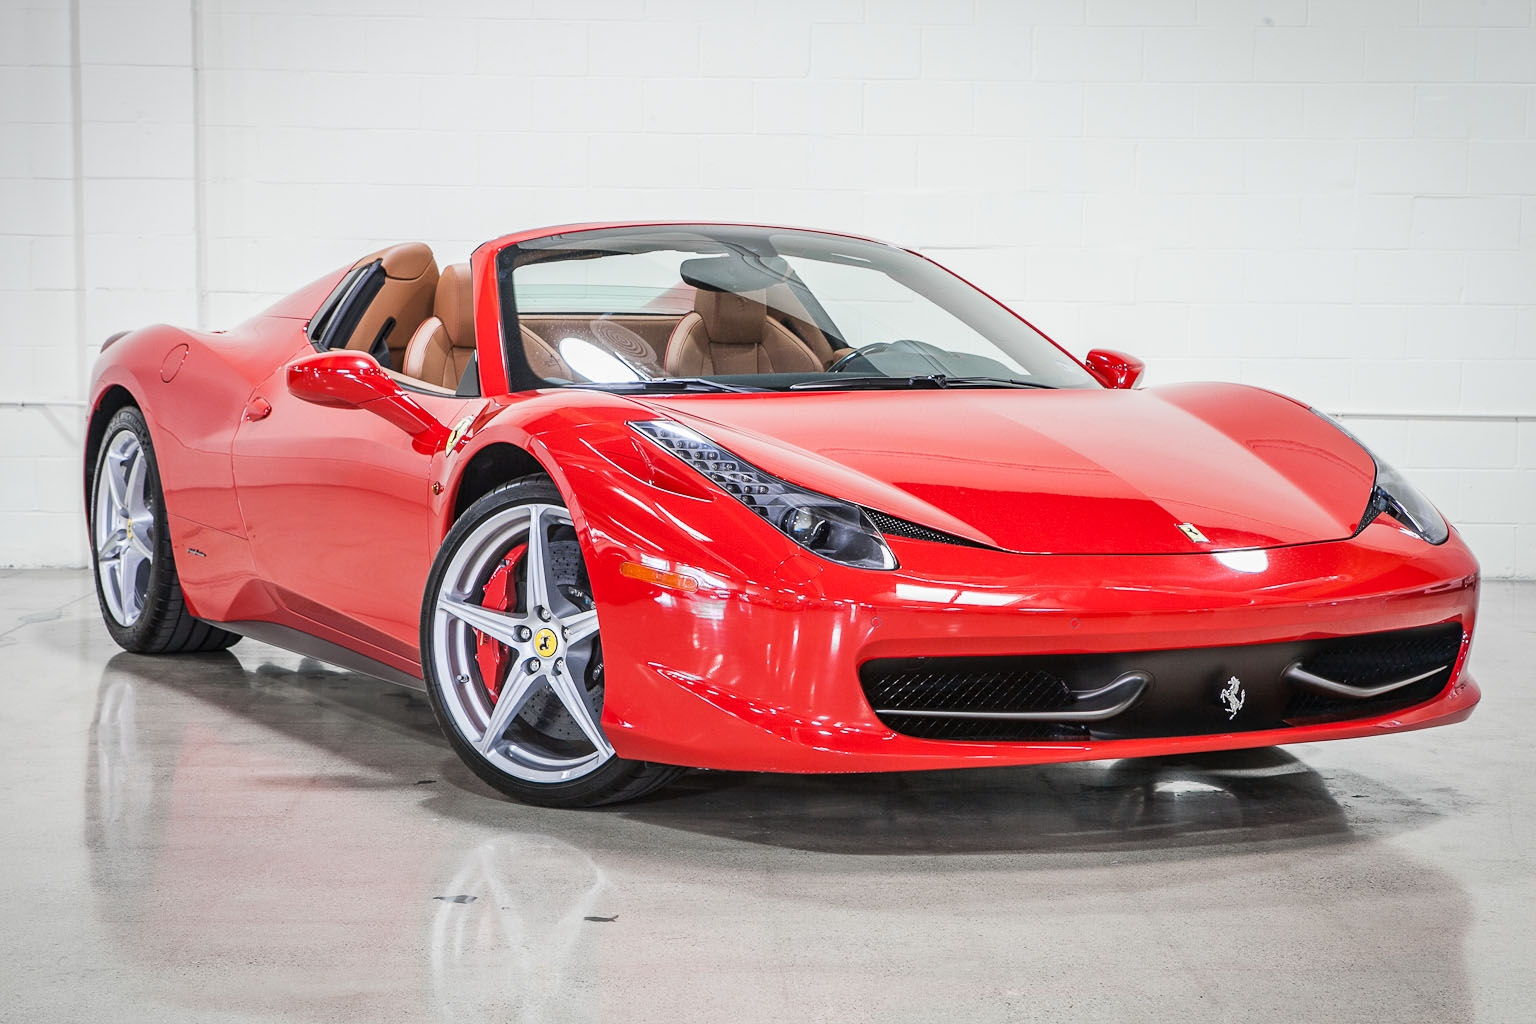 2014 Ferrari 458 Spider >> Luxury Ferrari 458 Spider - Luxury Things